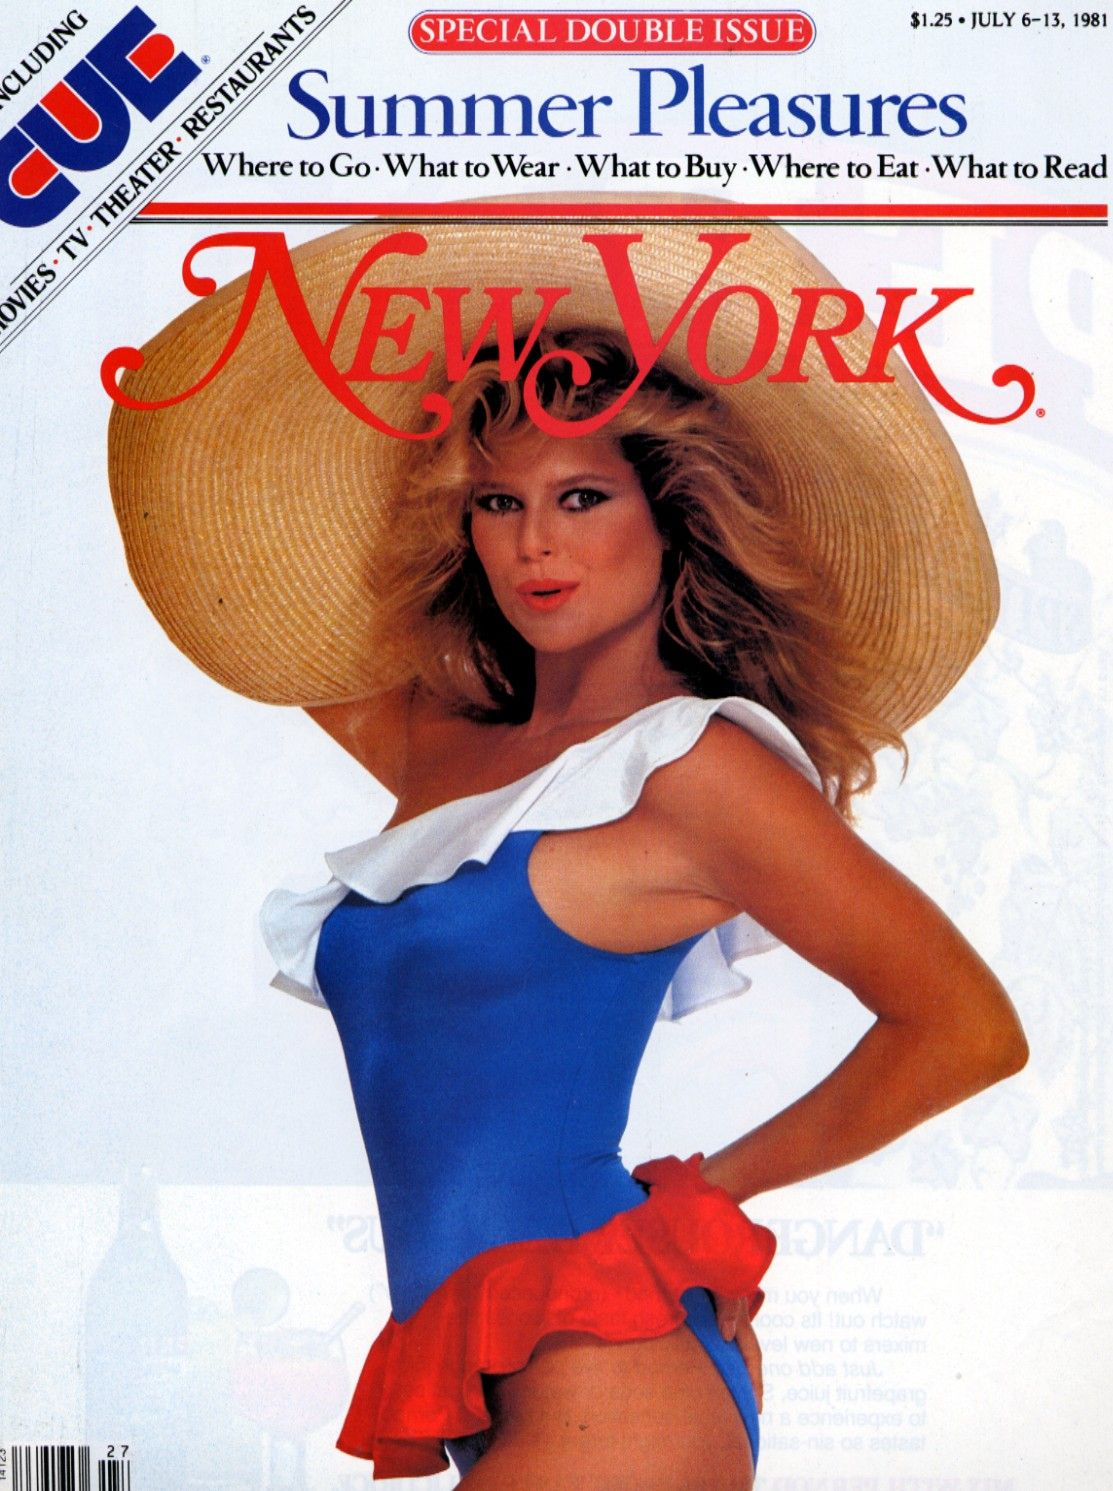 1981 cover model christie brinkley would be skimmed in photoshop 1981 cover model christie brinkley would be skimmed in photoshop by todays standards geenschuldenfo Images